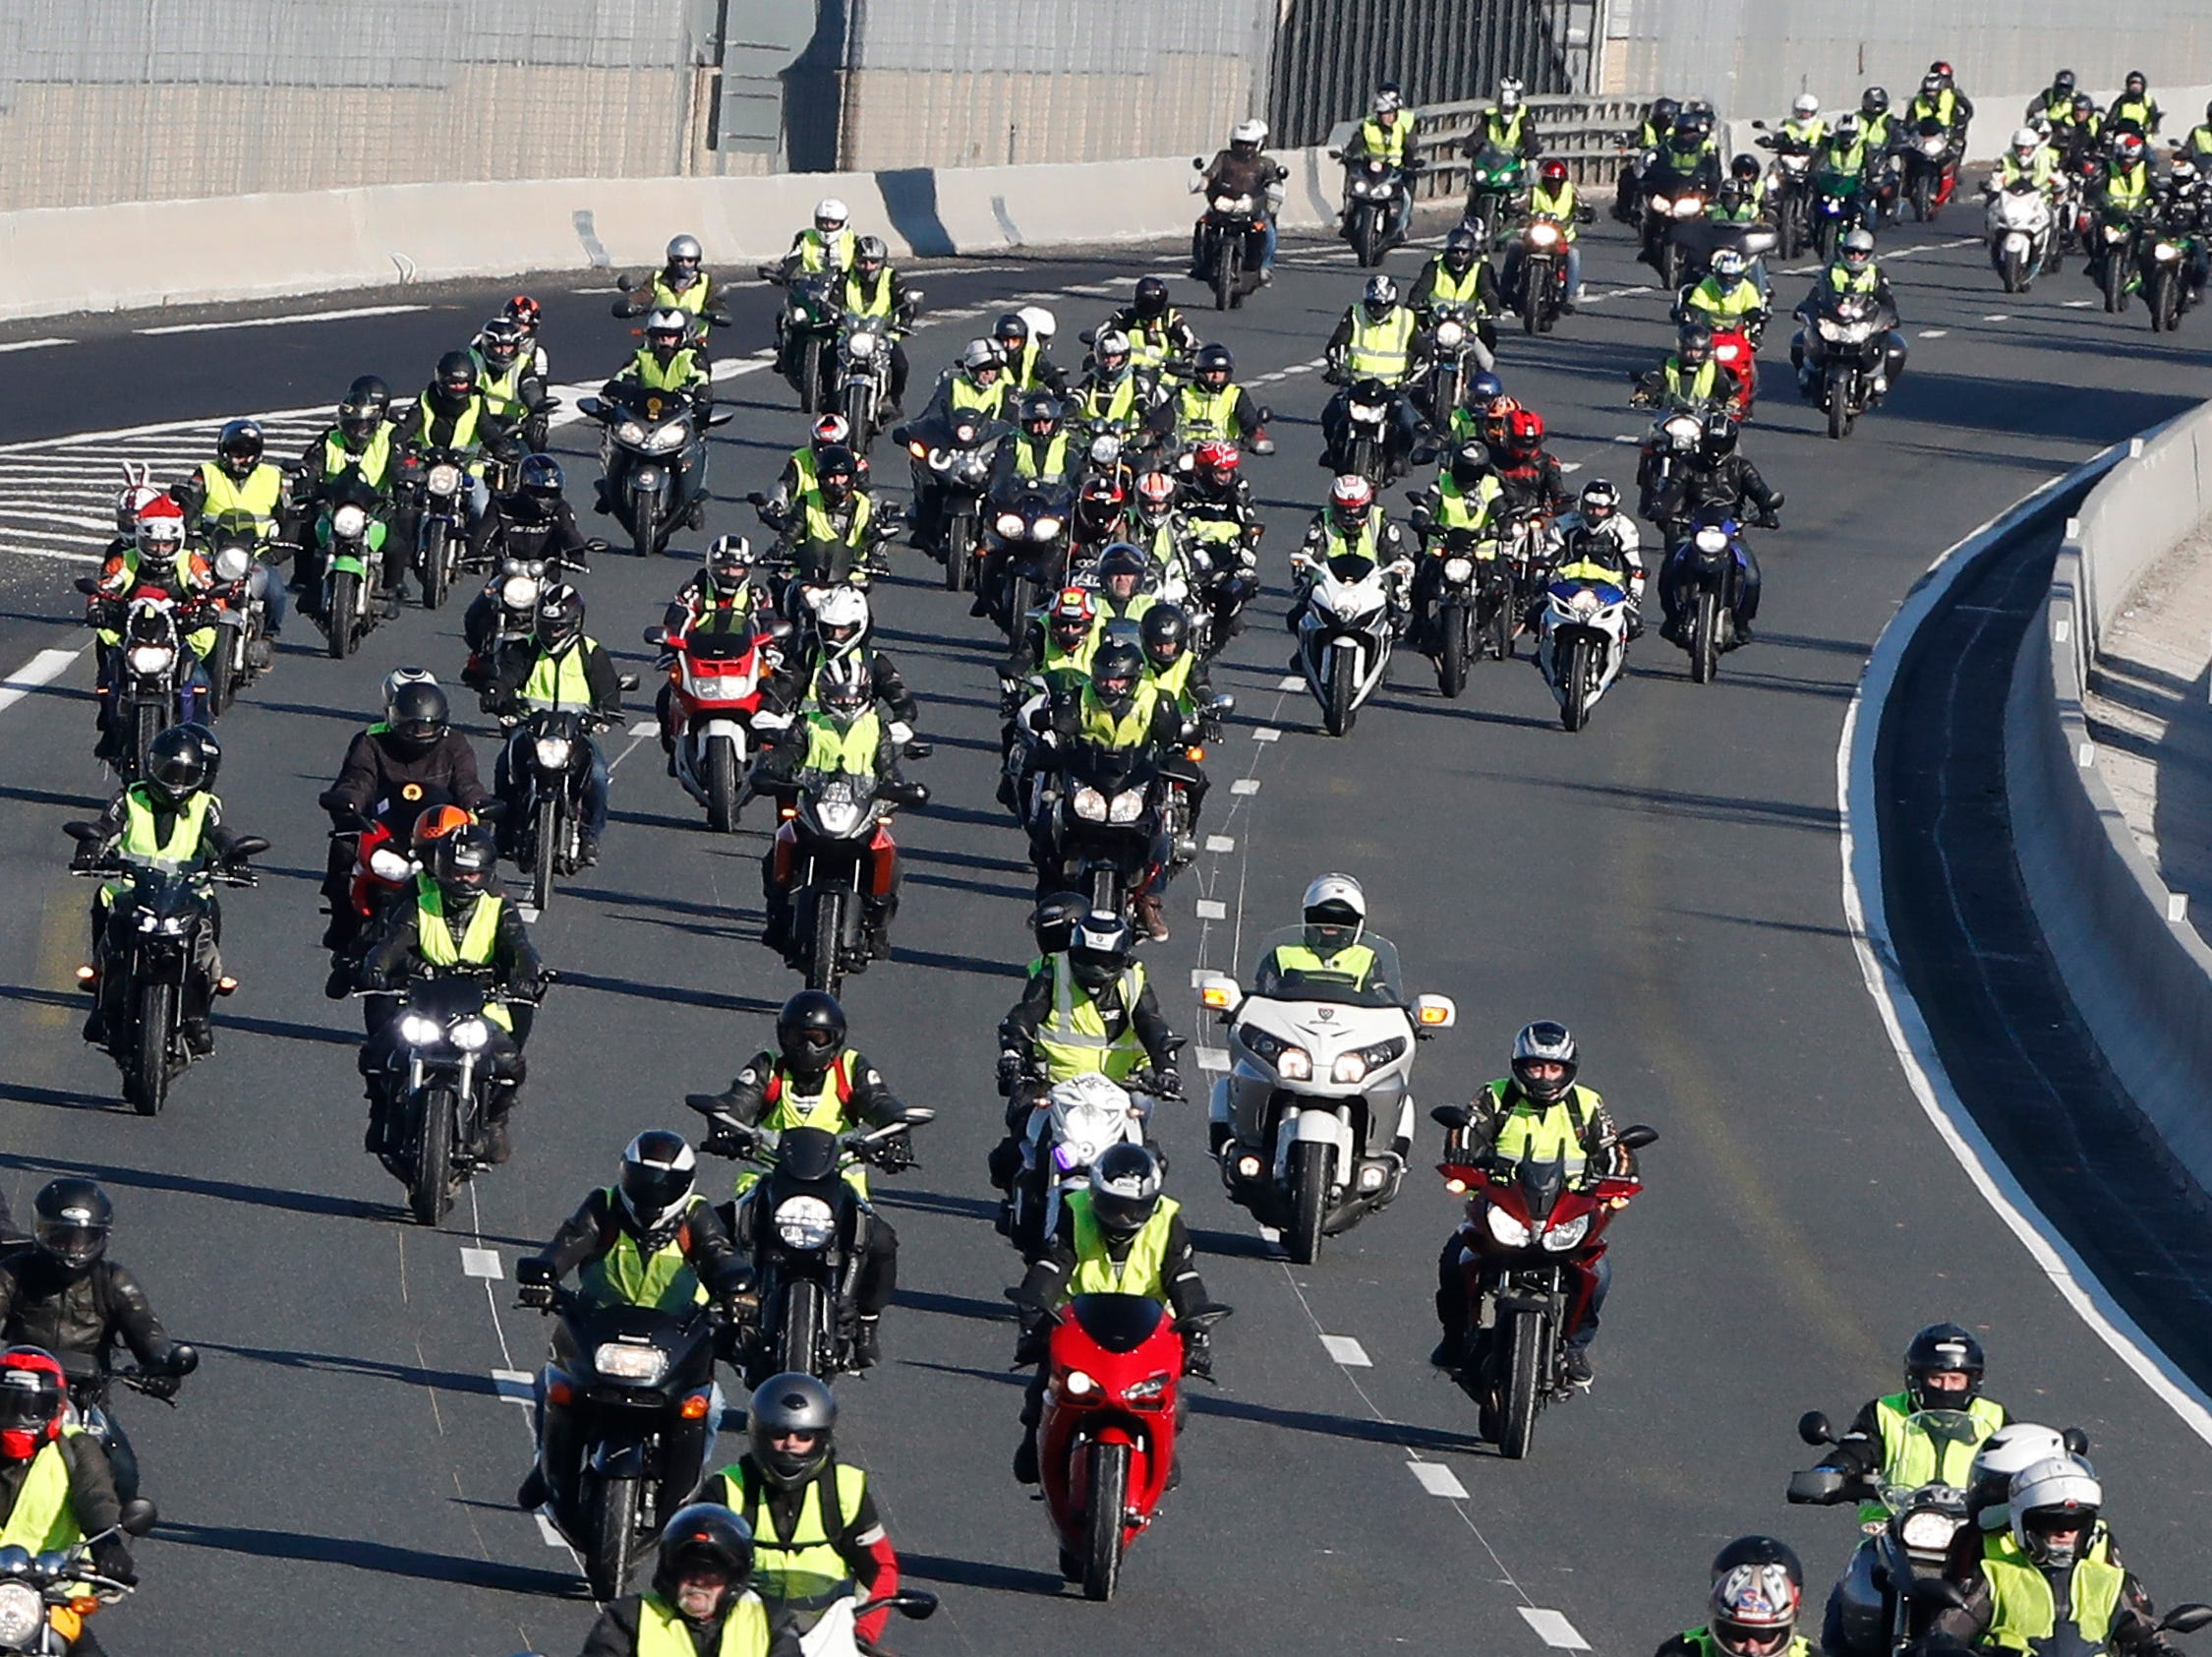 Bikers wearing yellow vests, as a symbol of French driver's and citizen's, demonstrate on the highway of Montpellier, Southern France on Dec. 29,2018. The so-called 'gilets jaunes' (yellow vests) are a protest movement, which reportedly has no political affiliation, is protesting across the nation over high fuel prices.